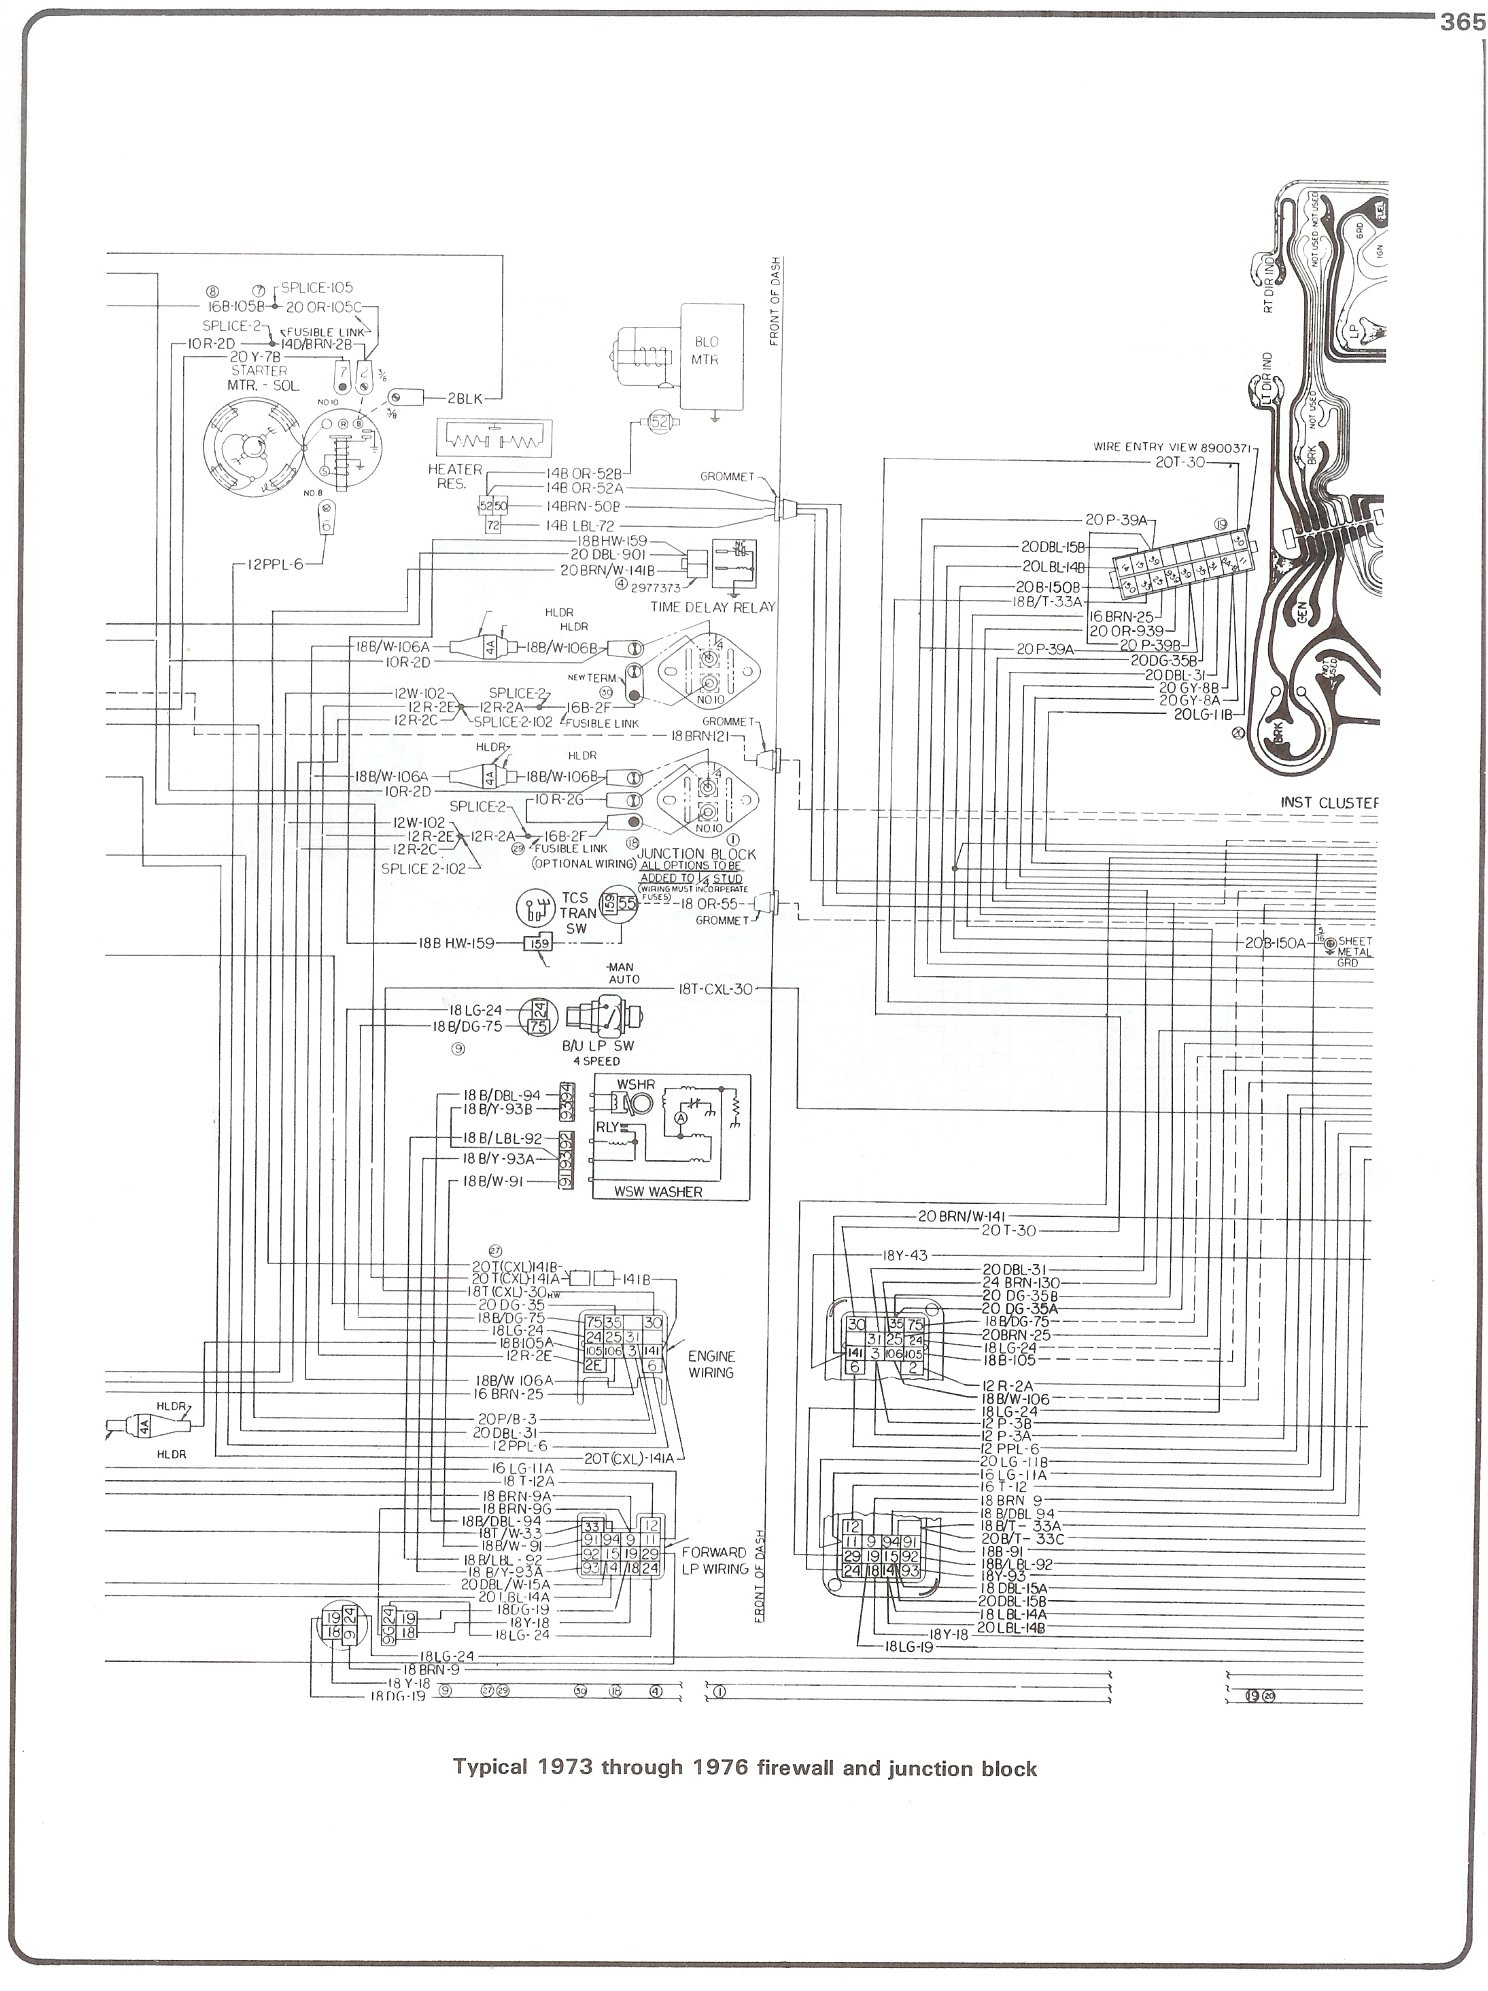 wiring diagram on 76 ford pickup  wiring  free engine image for user manual download